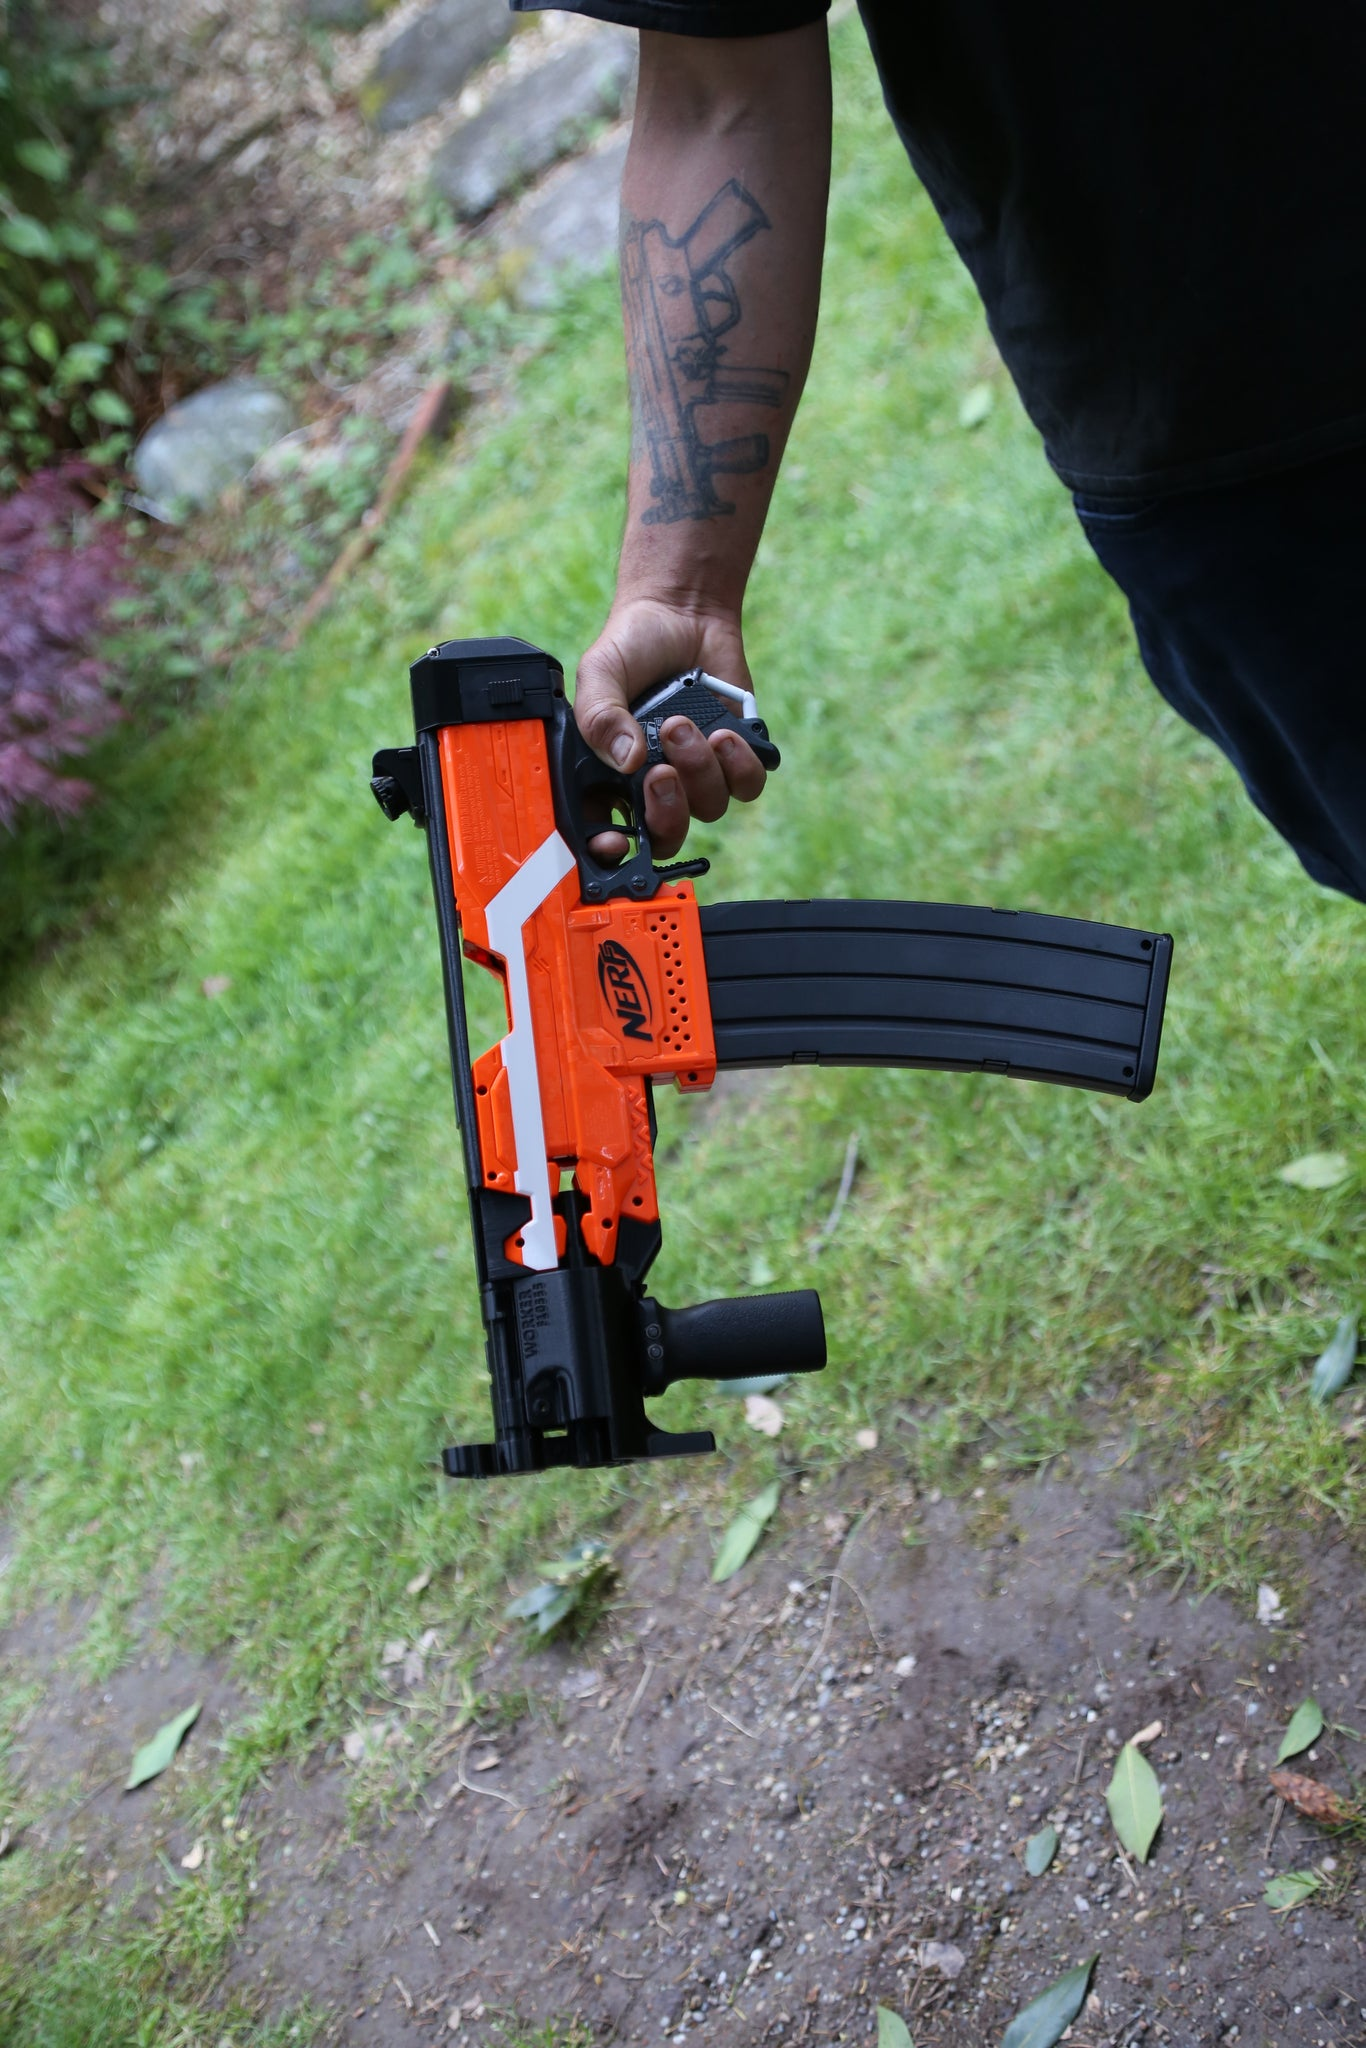 Accessories and stock attachments – Tacticool Foam Nerf